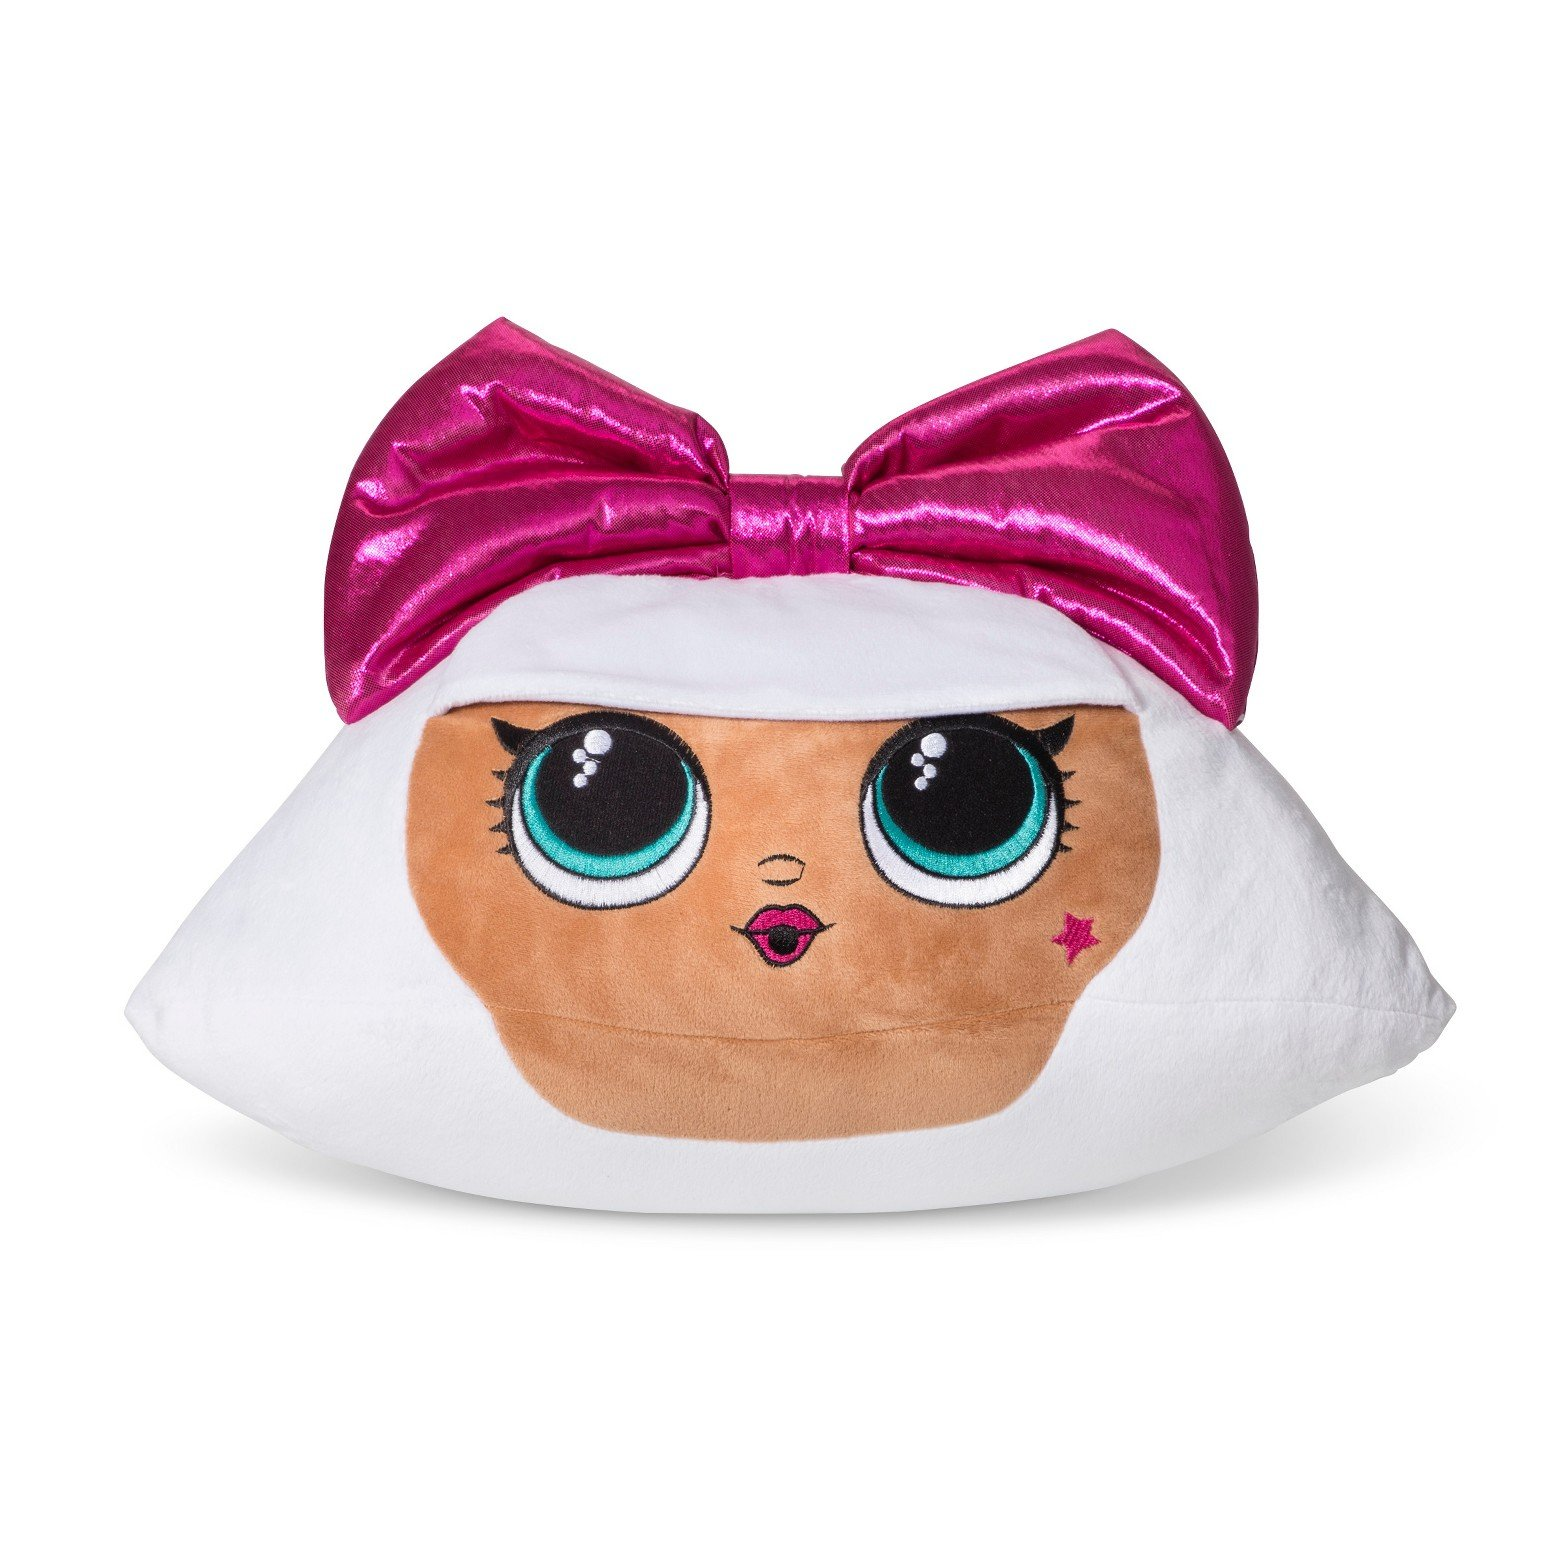 MGA Lol Surprise Pink Bow Diva Shaped Cuddle Pillow